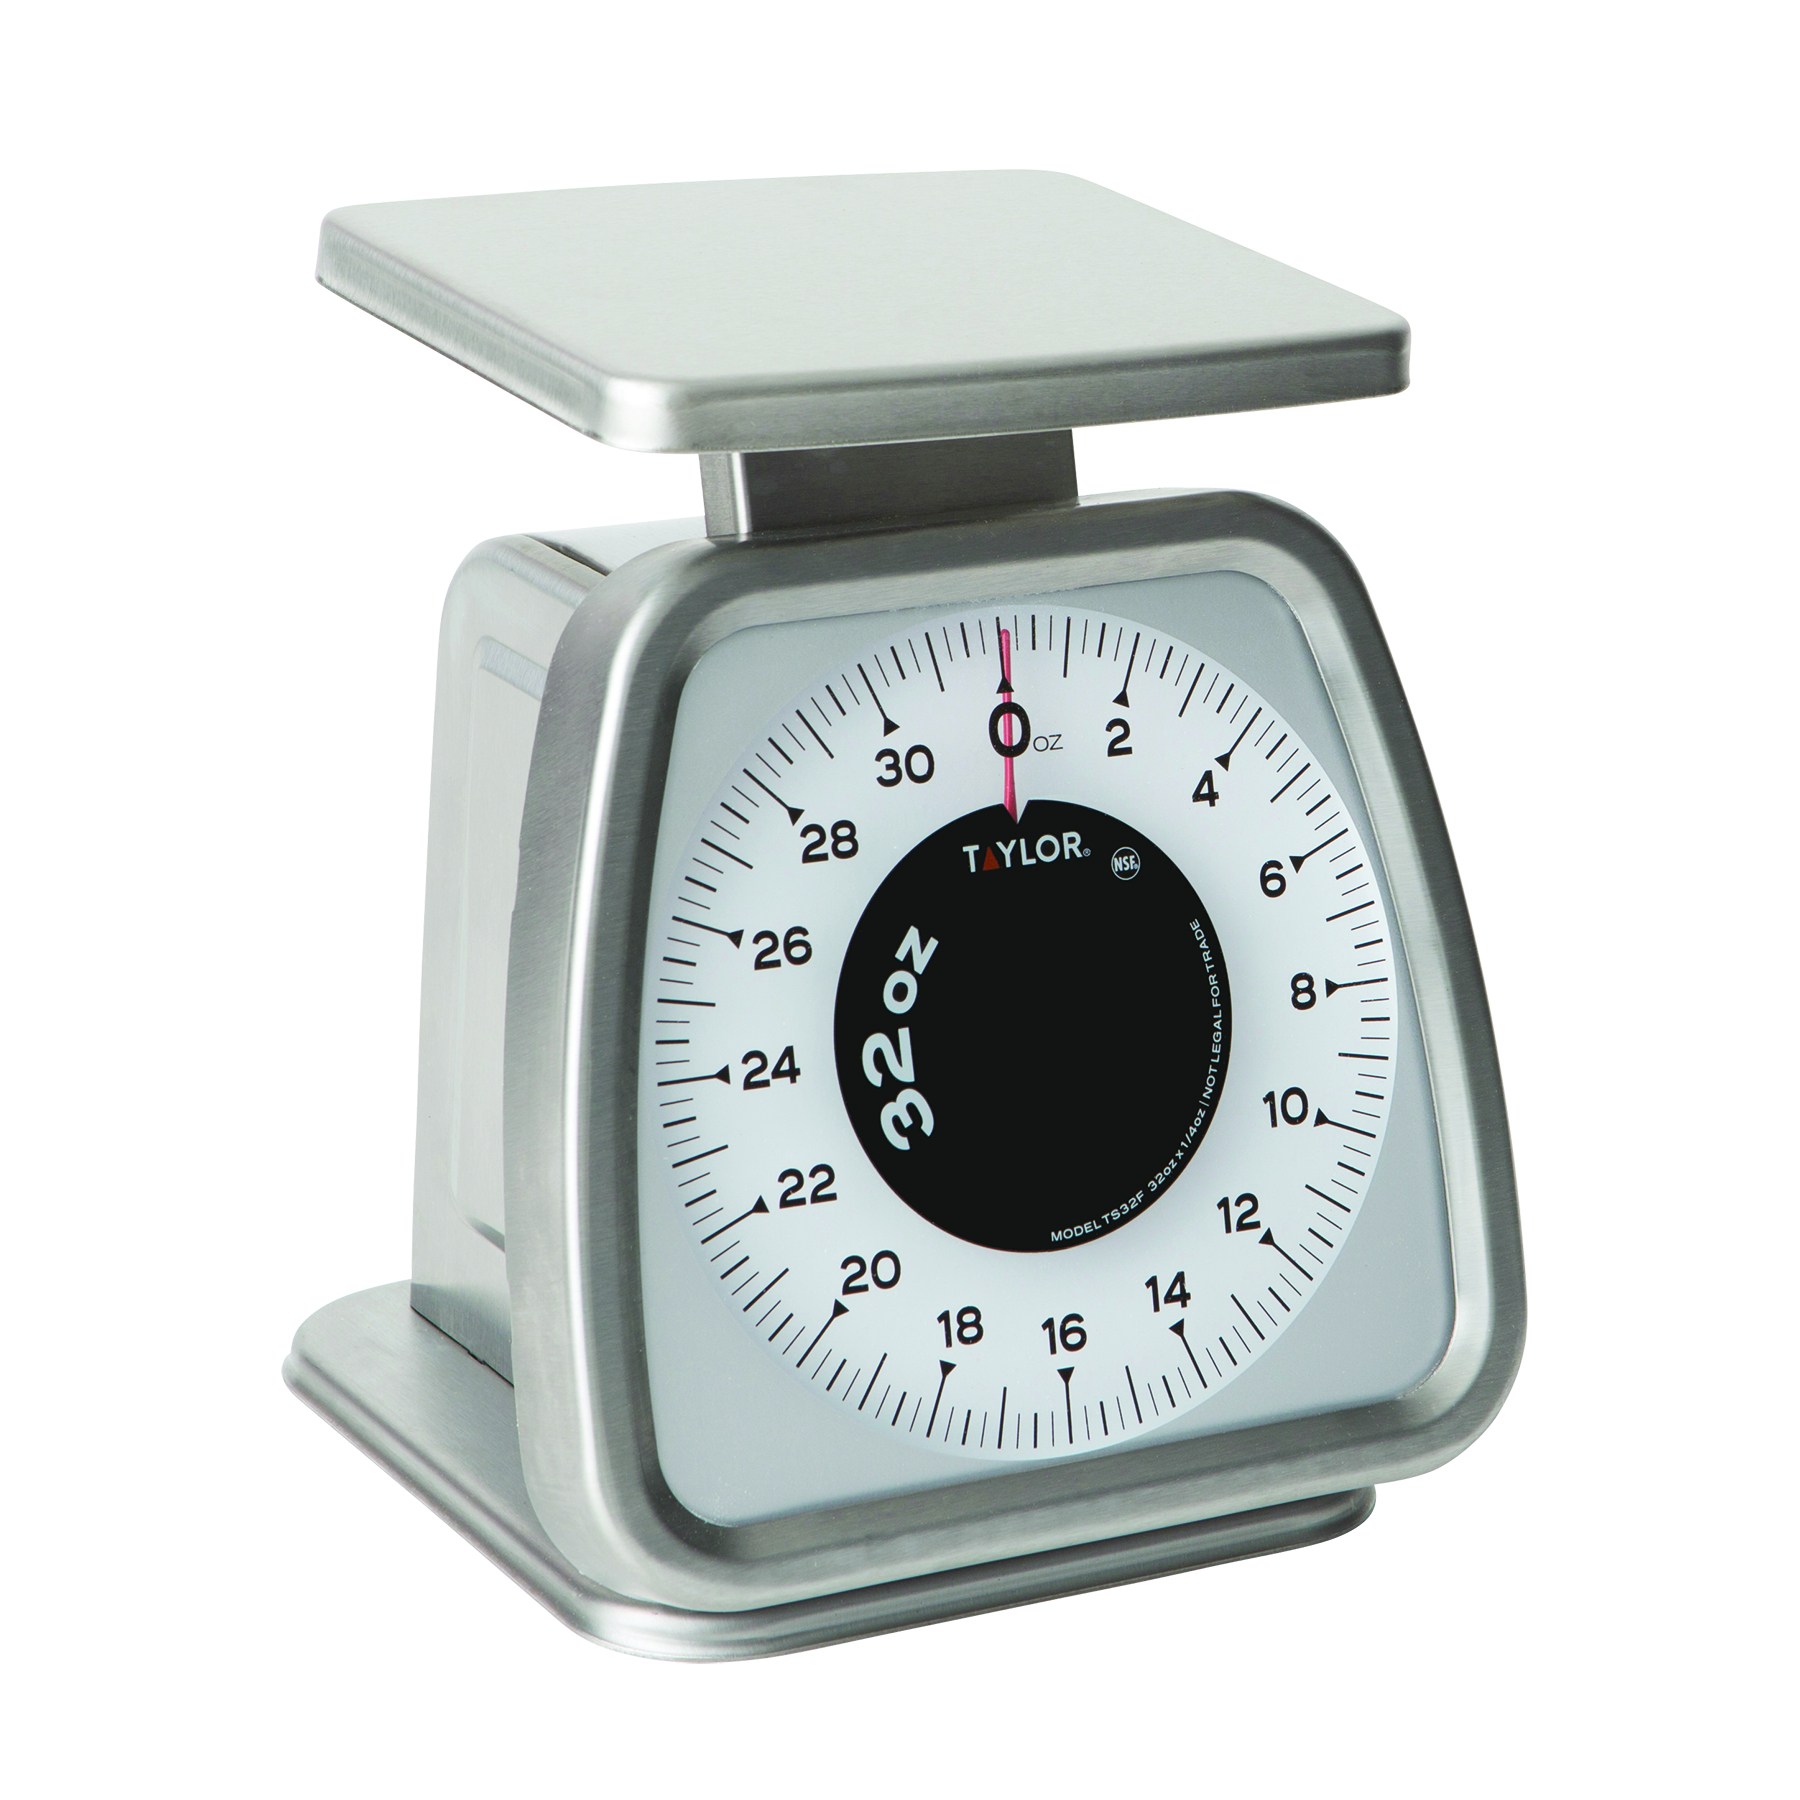 Taylor Precision TS32F scale, portion, dial